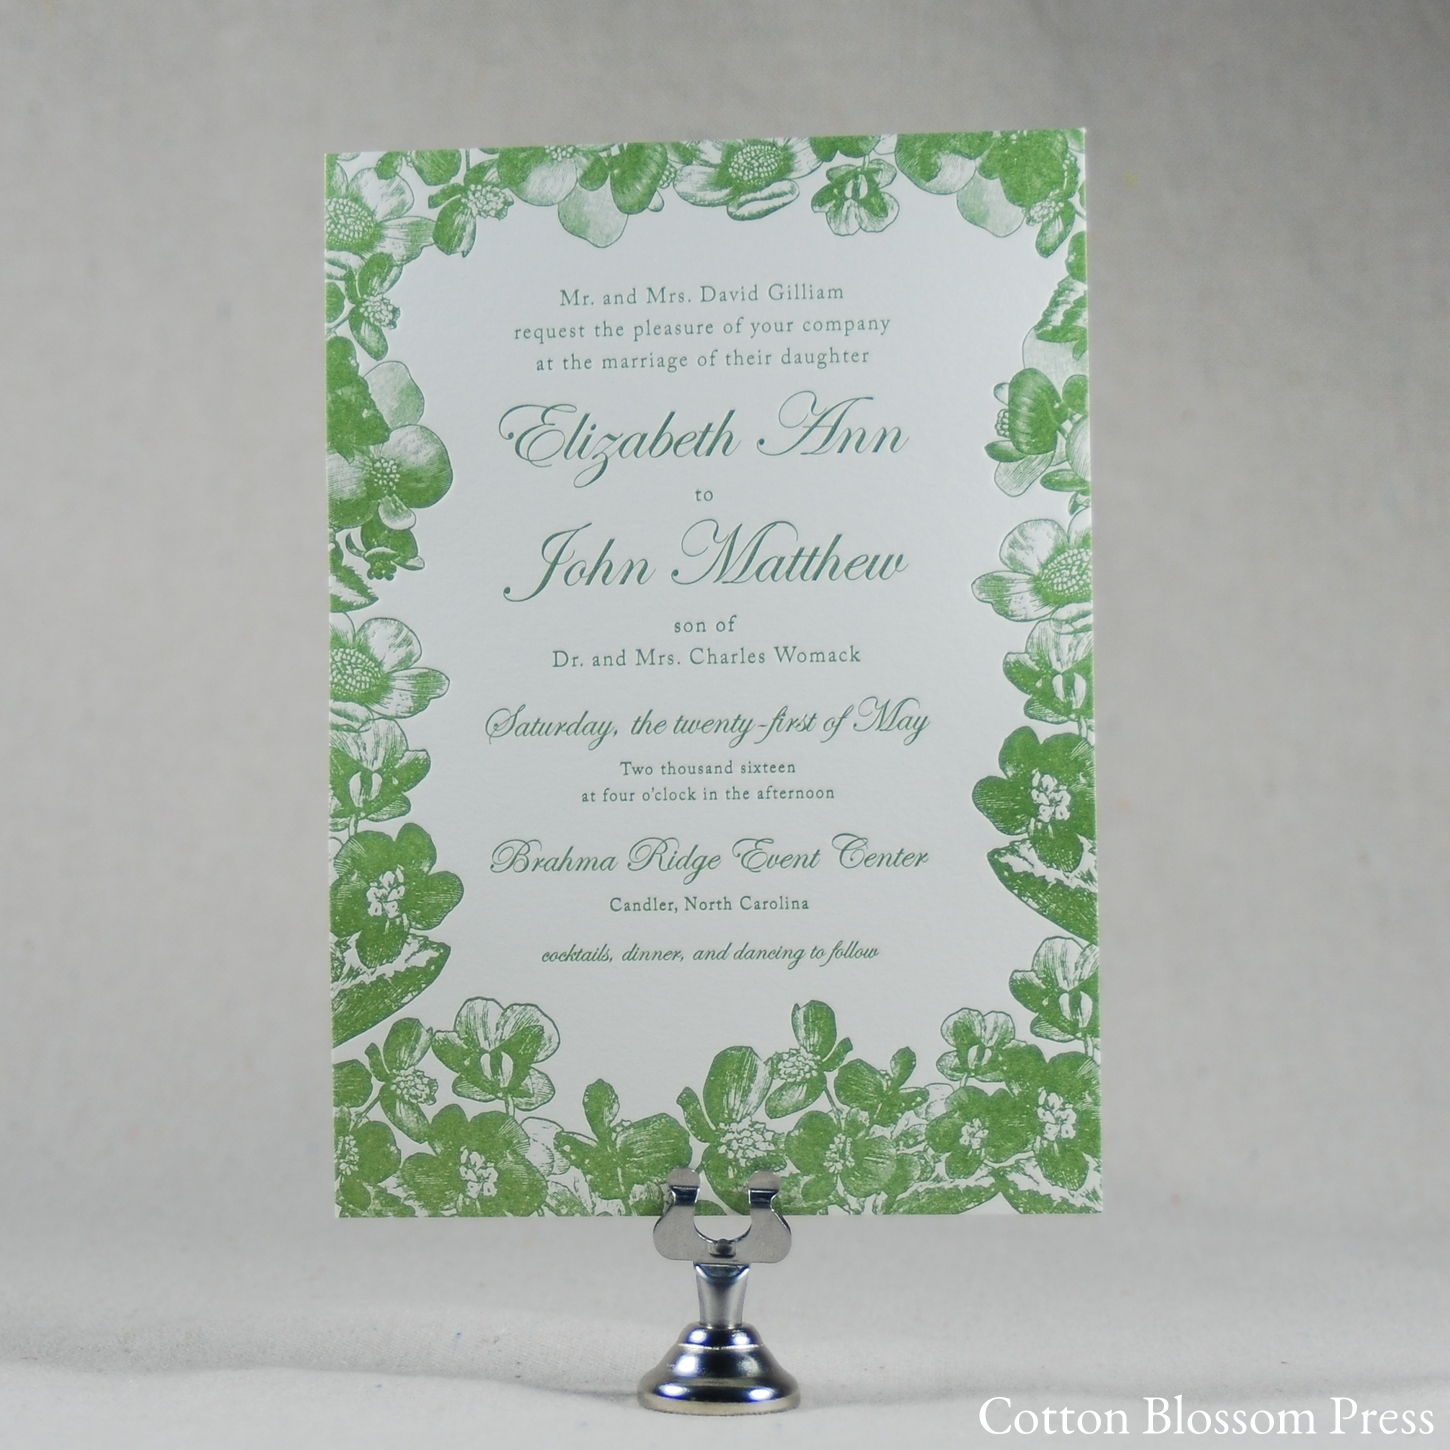 CBP-Wedding_Liz2_Invite.JPG